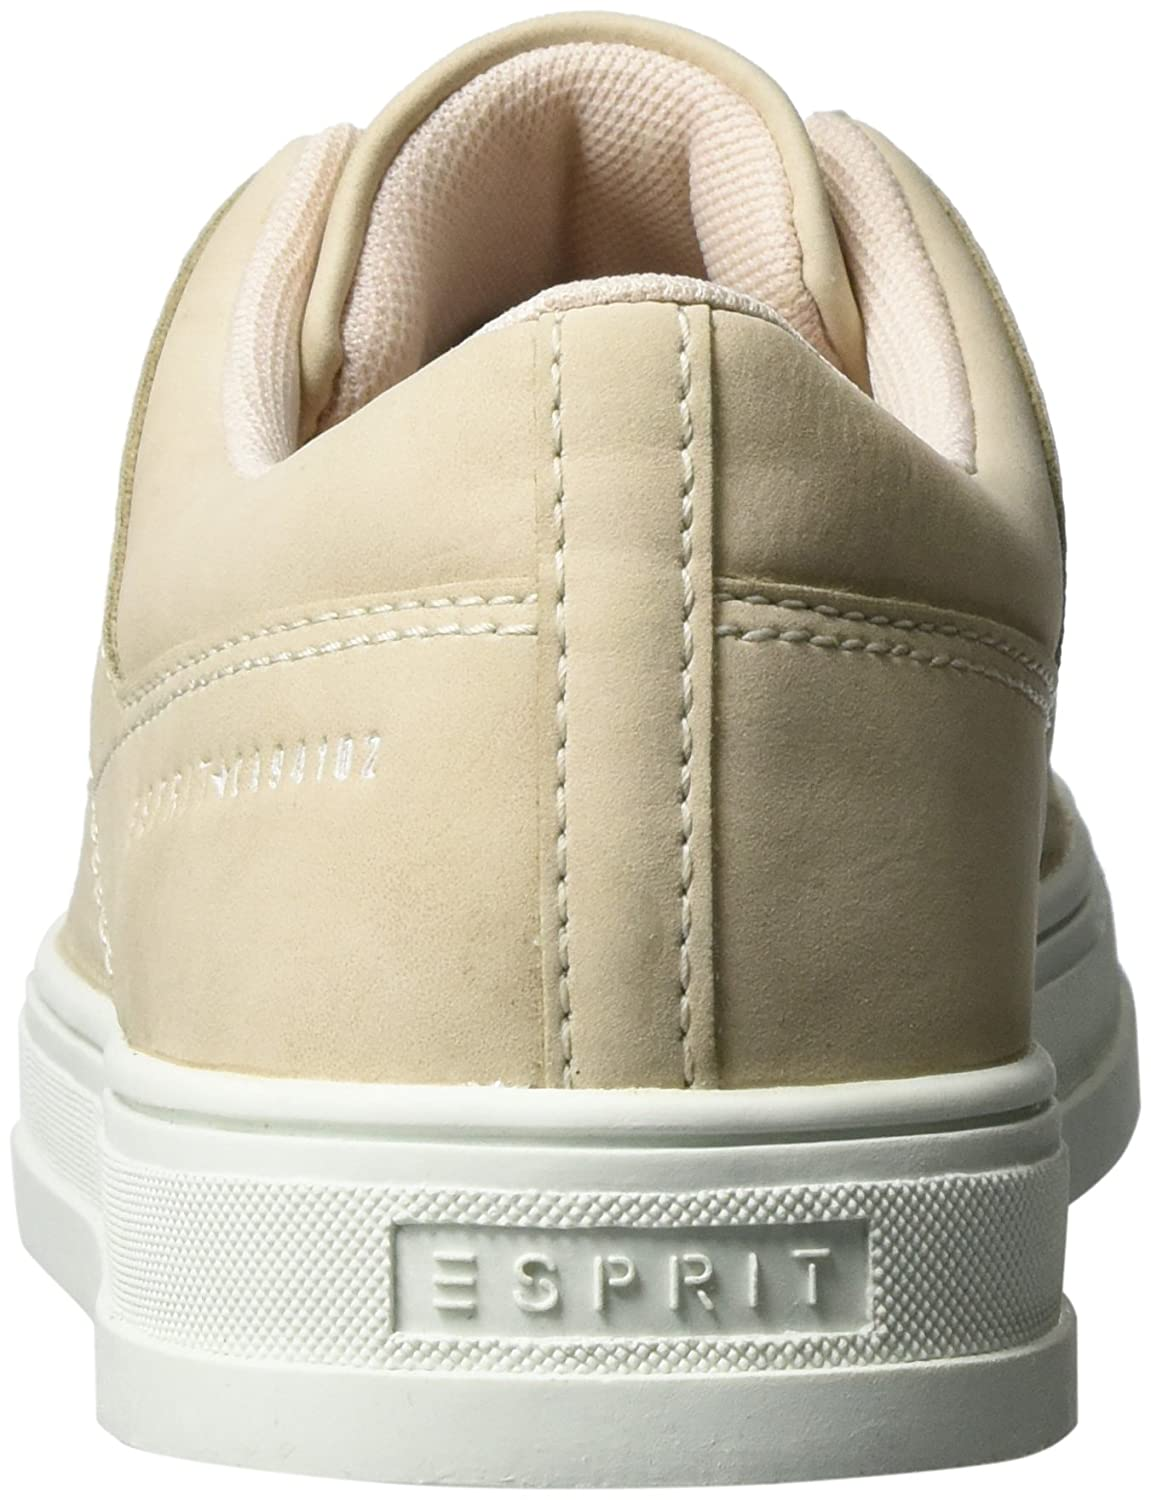 ESPRIT Damen Sidney Sidney Sidney Perf Lace Up Turnschuhe  157c42